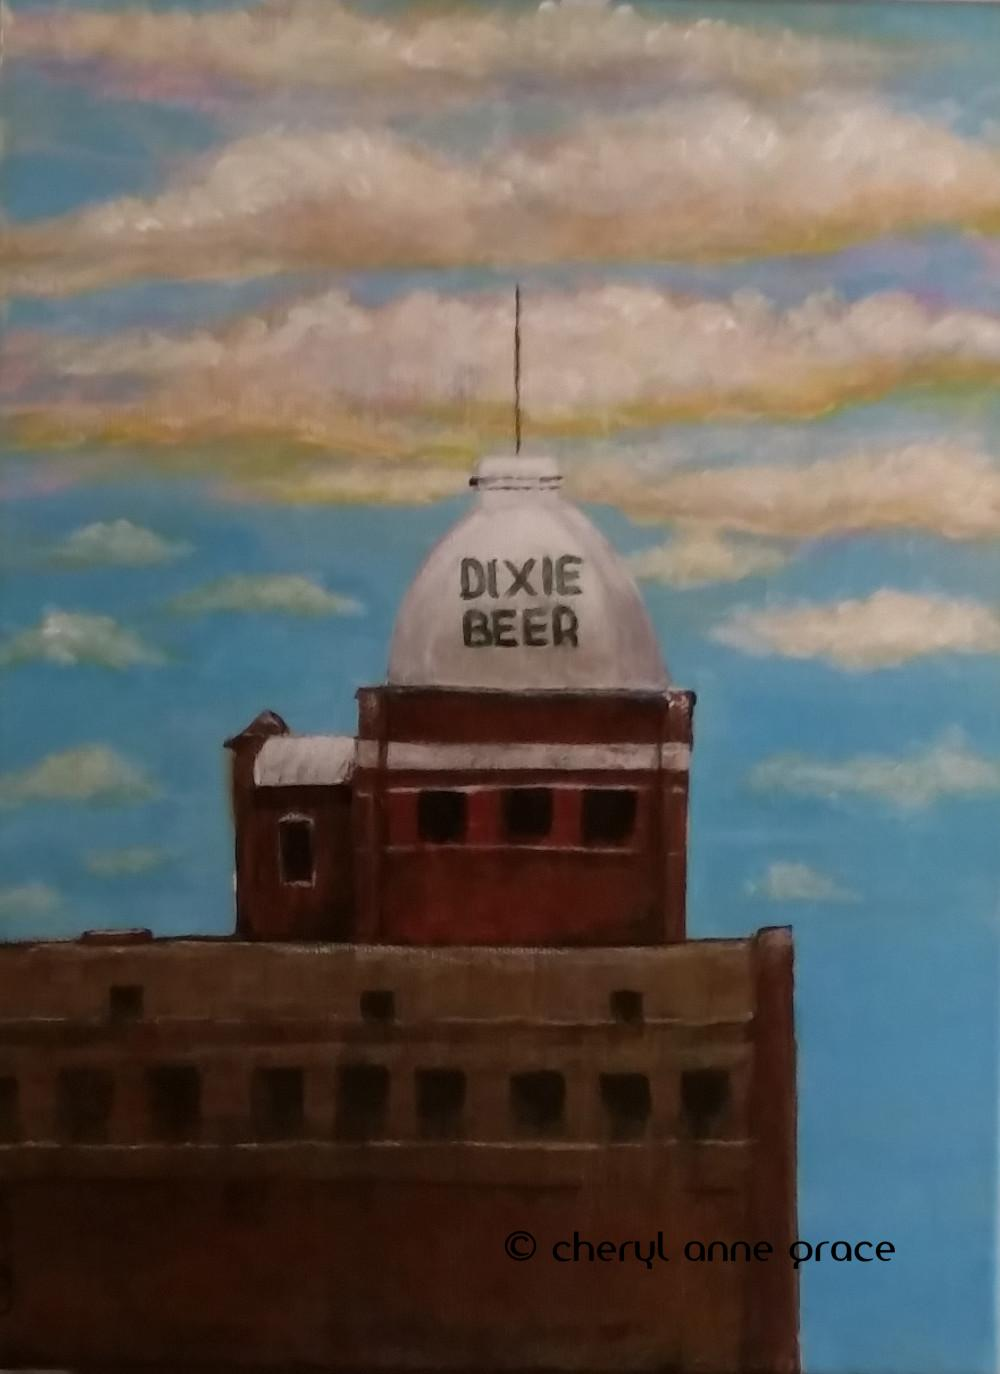 The Brewery, 9x12. The letters have recently been removed as this historic building undergoes renovation as part of the new medical corridor on Tulane Ave. SOLD